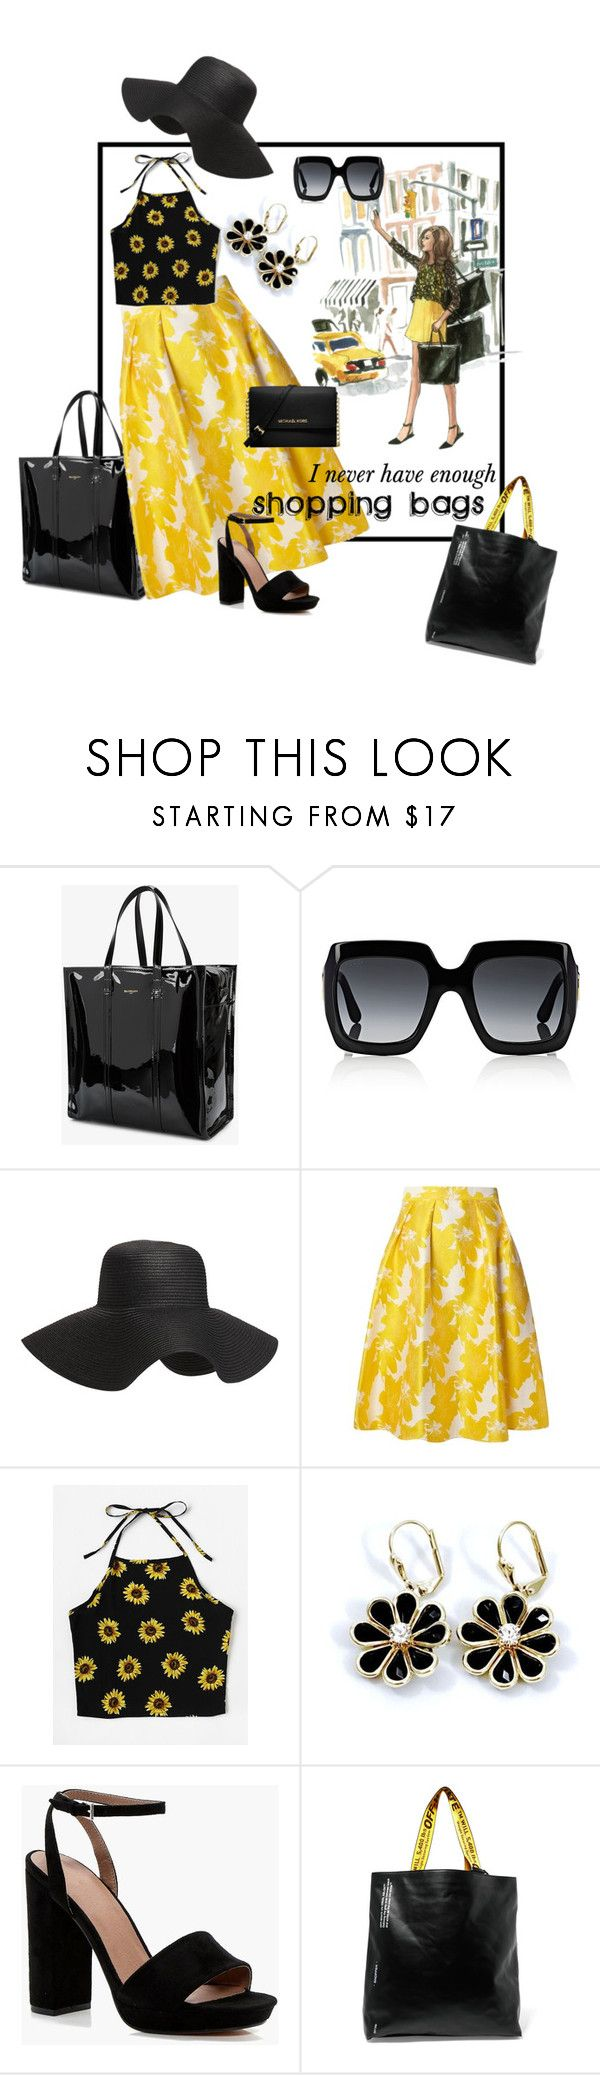 """How Many Shopping Bags?"" by kindlefraud ❤ liked on Polyvore featuring Balenciaga, Gucci, Old Navy, Dorothy Perkins, Boohoo, Off-White and Michael Kors"